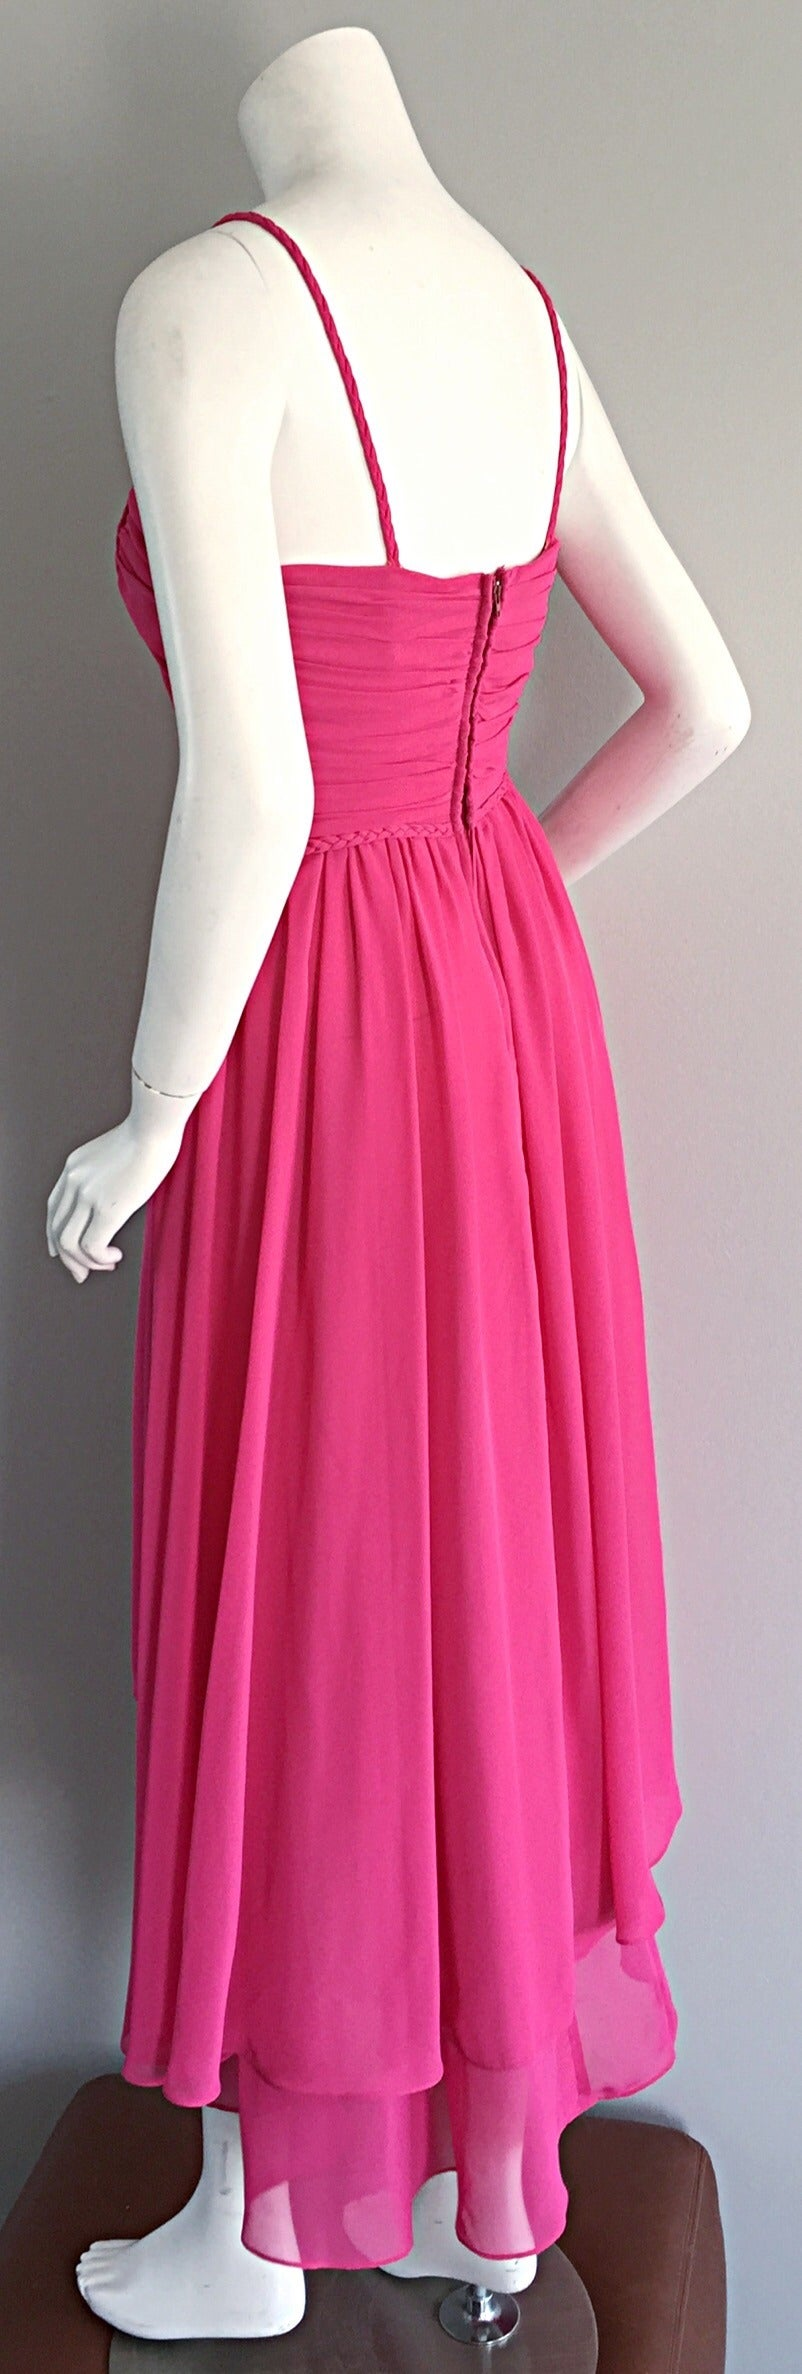 1970s Joy Stevens Hot Pink Vintage Flowy Grecian Disco Dress w/ Braided Details For Sale 3